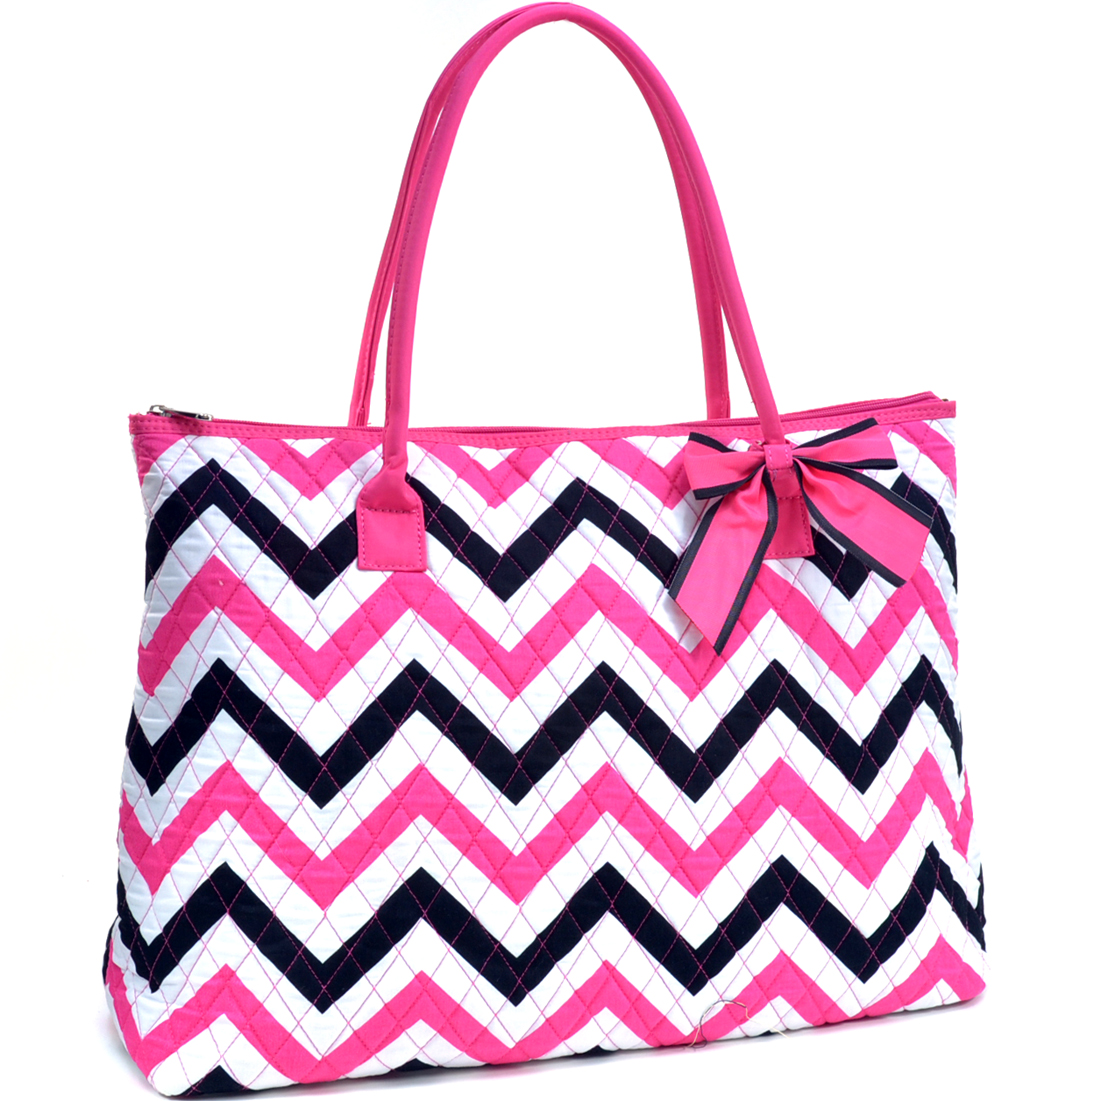 Oversized Quilted Tote Bag with Optional Bow Decor in Chevron Print